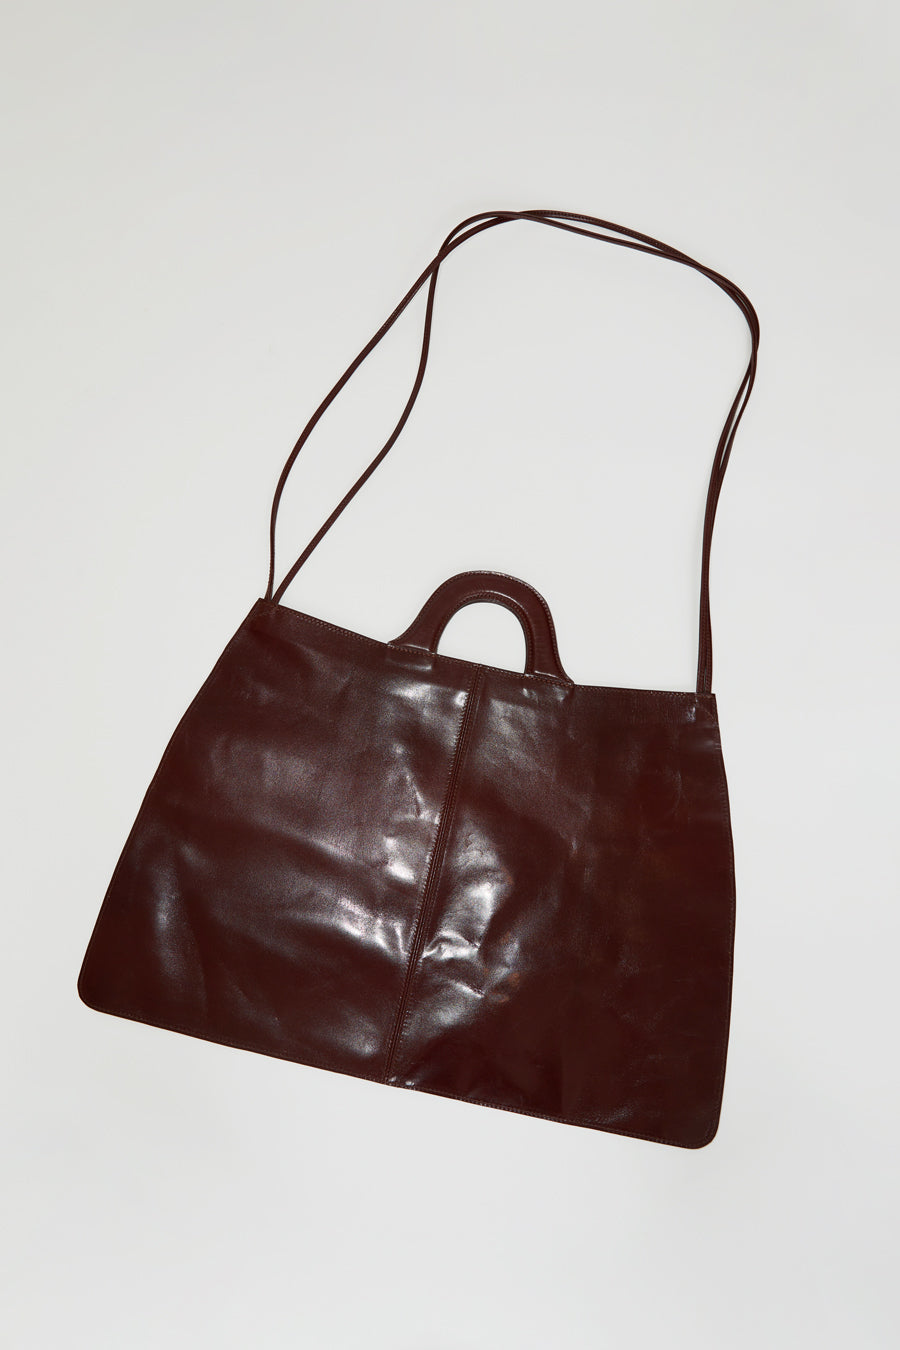 Martiniano Padua Bag in Oxblood